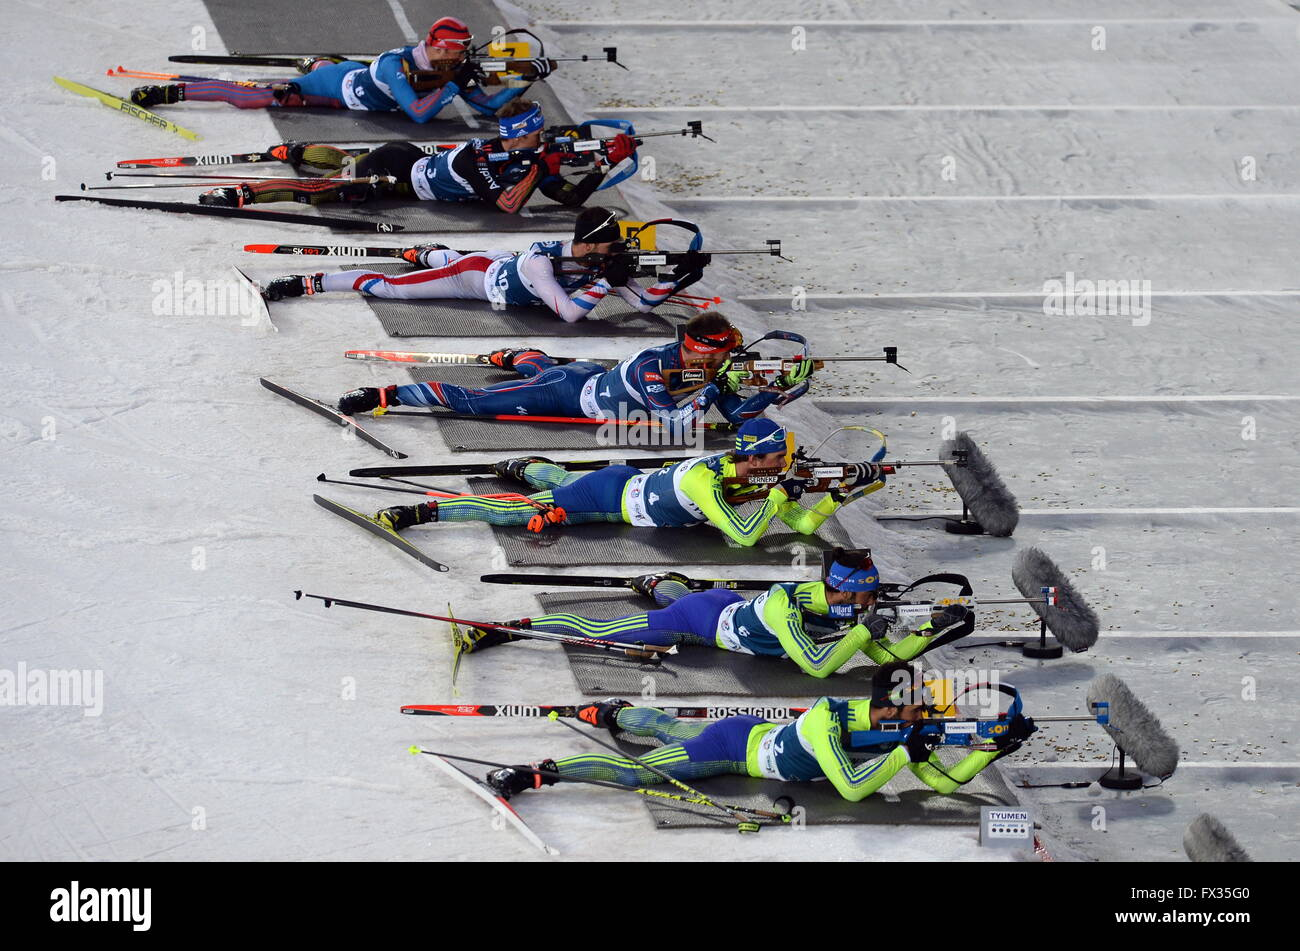 Tyumen, Russia. 10th Apr, 2016. Biathletes compete in the skiers' and biathletes' mixed relay race for the - Stock Image